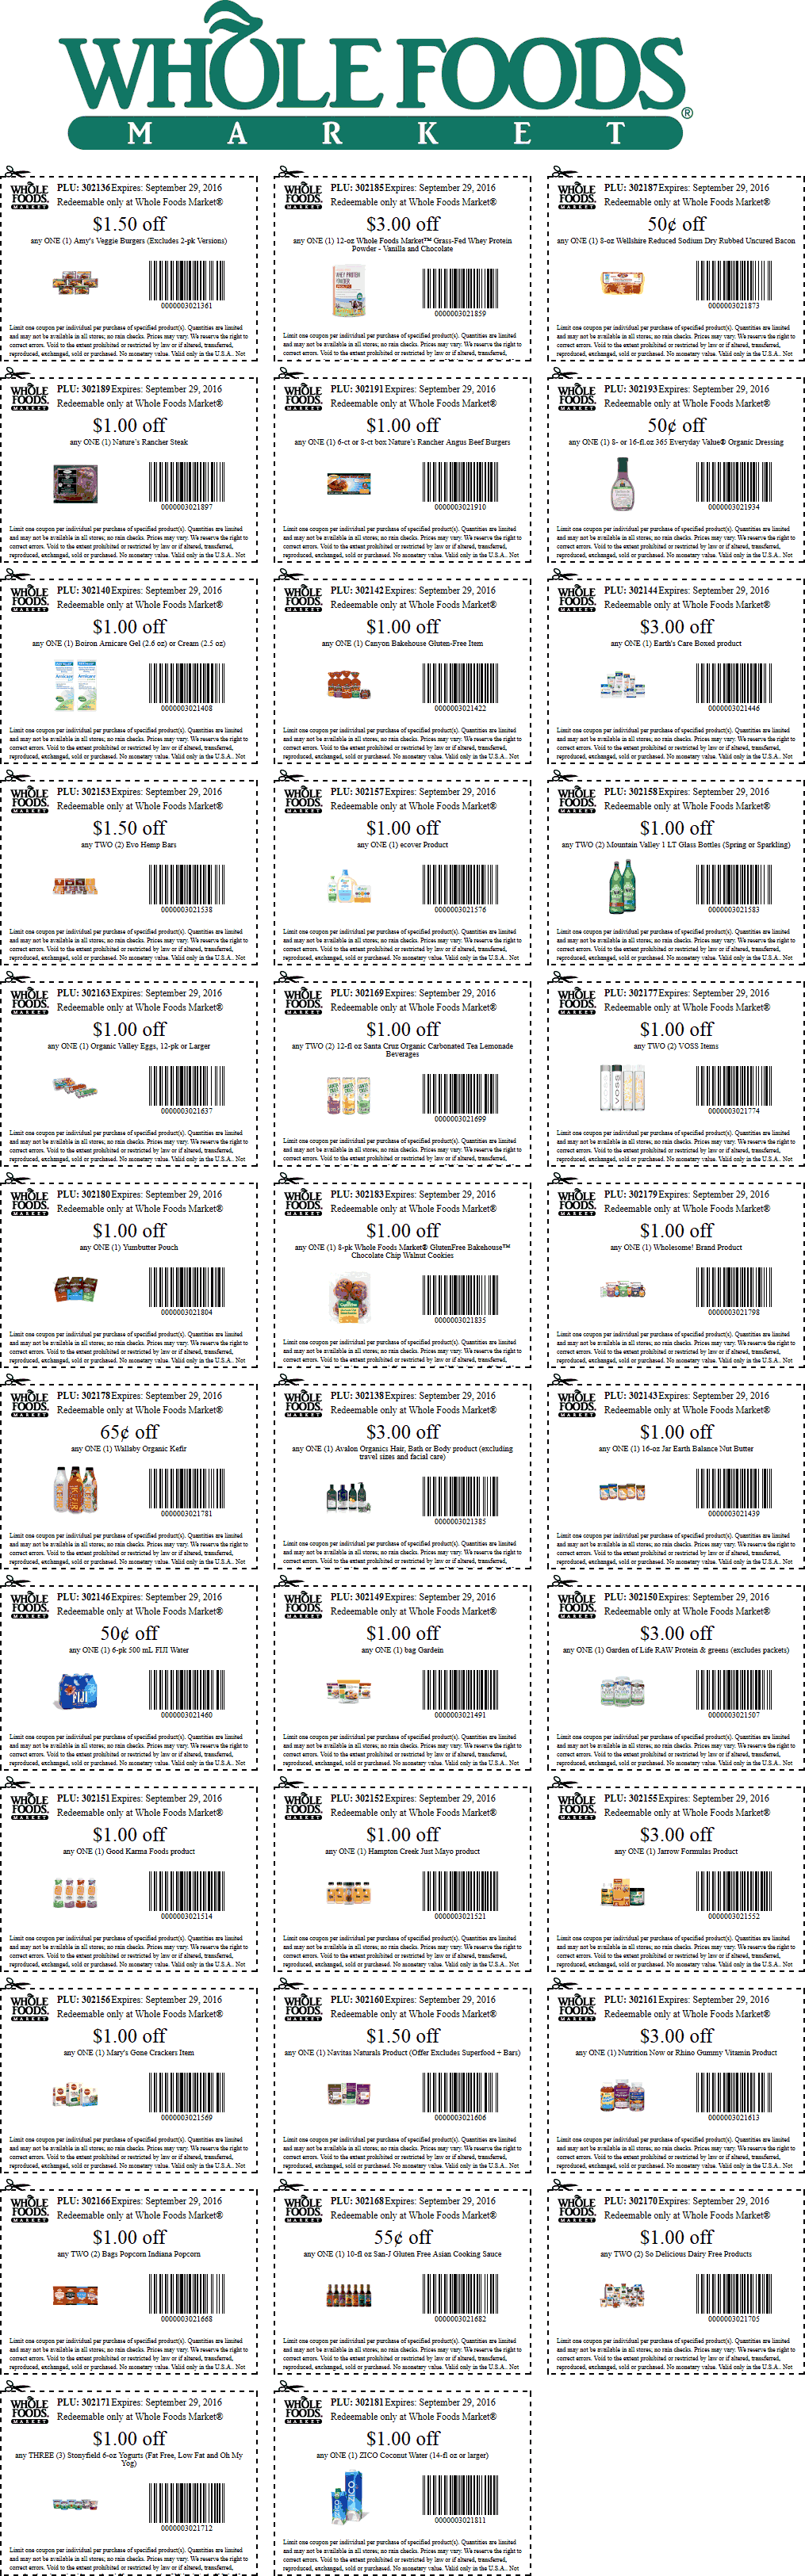 Whole Foods Coupon July 2017 Various grocery coupons for Whole Foods market